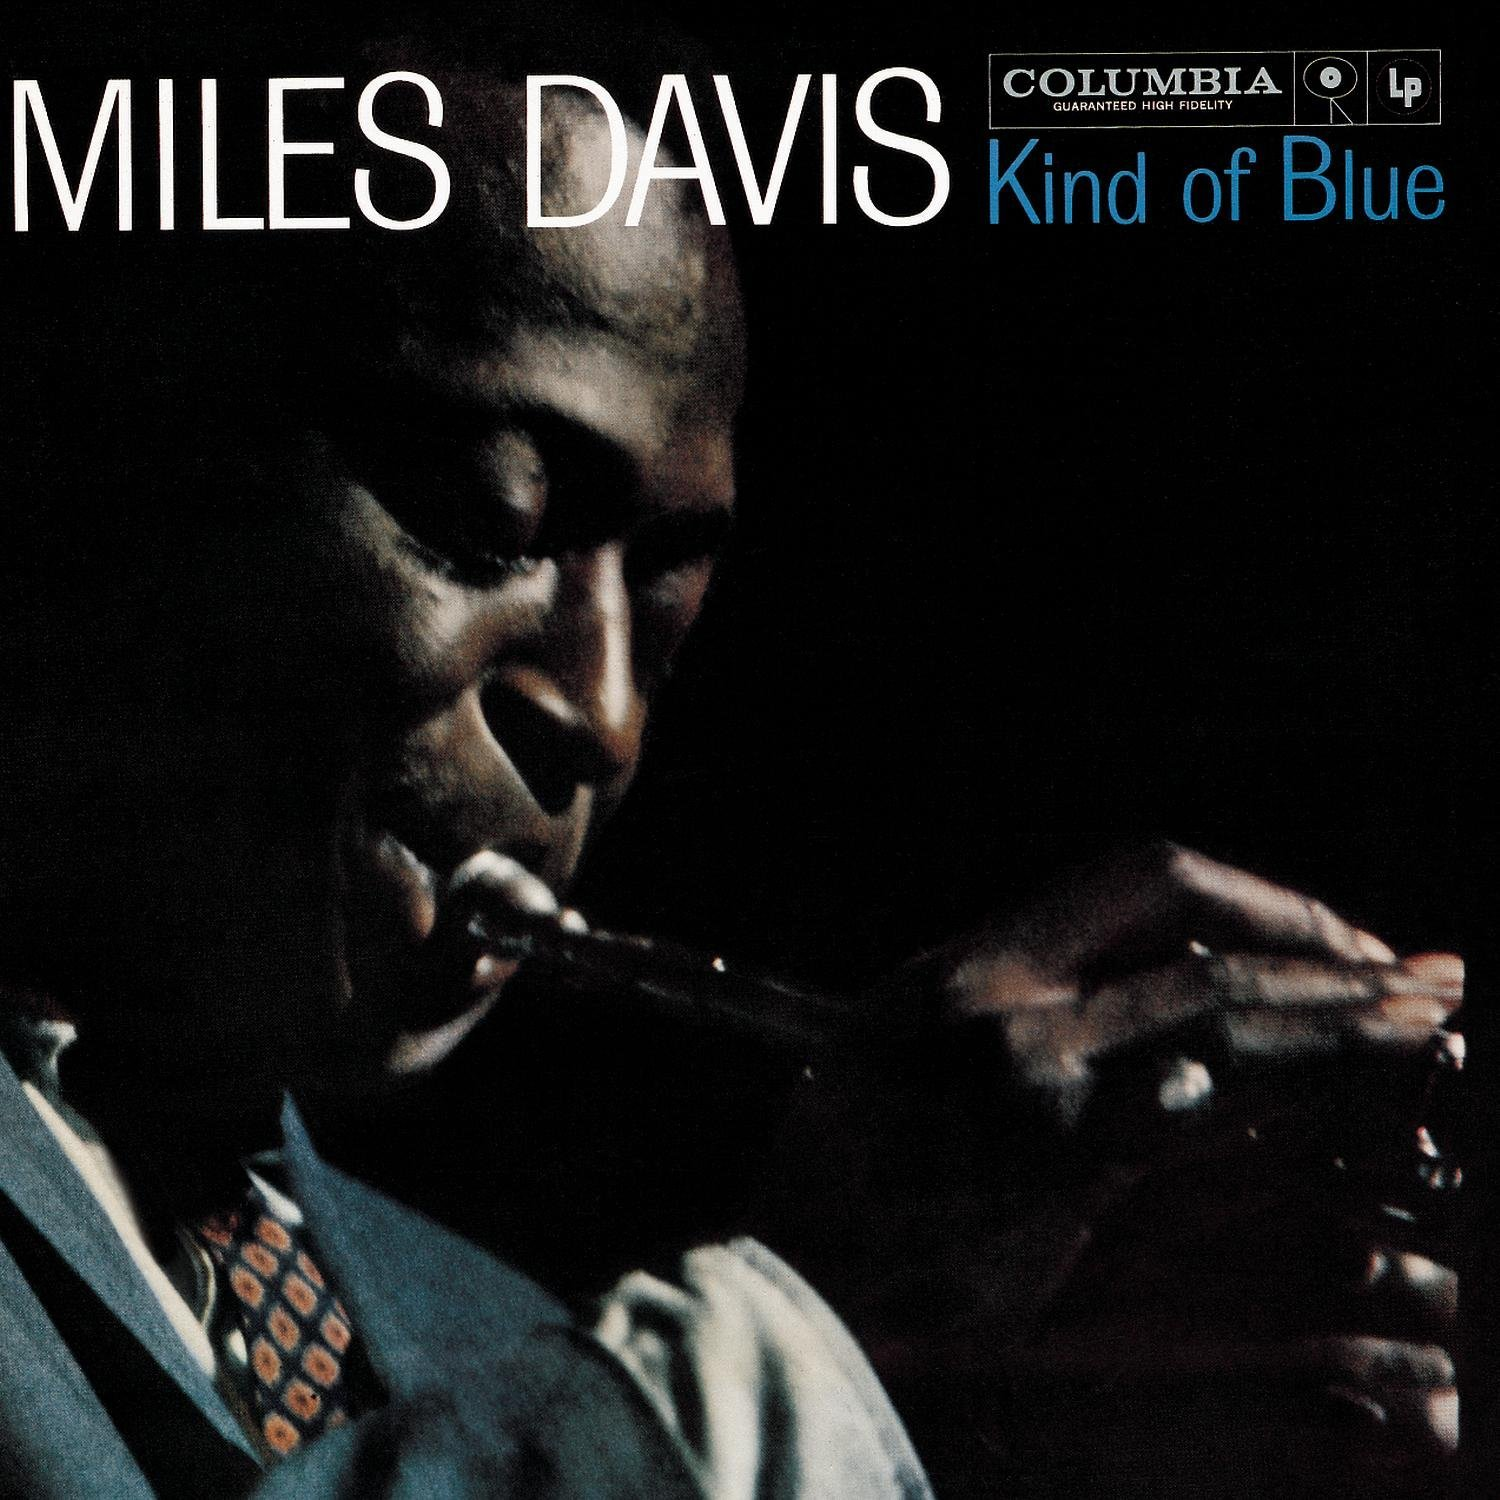 "Kind of Blue - By Miles Davis, 1959This album contains some of the most influential jazz. You can hear the slow saxophone meshing with the piano in songs like ""Blue in Green."" If you like drums, listen to ""Love for Sale,"" where the cymbals dictate the entire motion of the sax. This album will show you how cacophony can be music in itself."